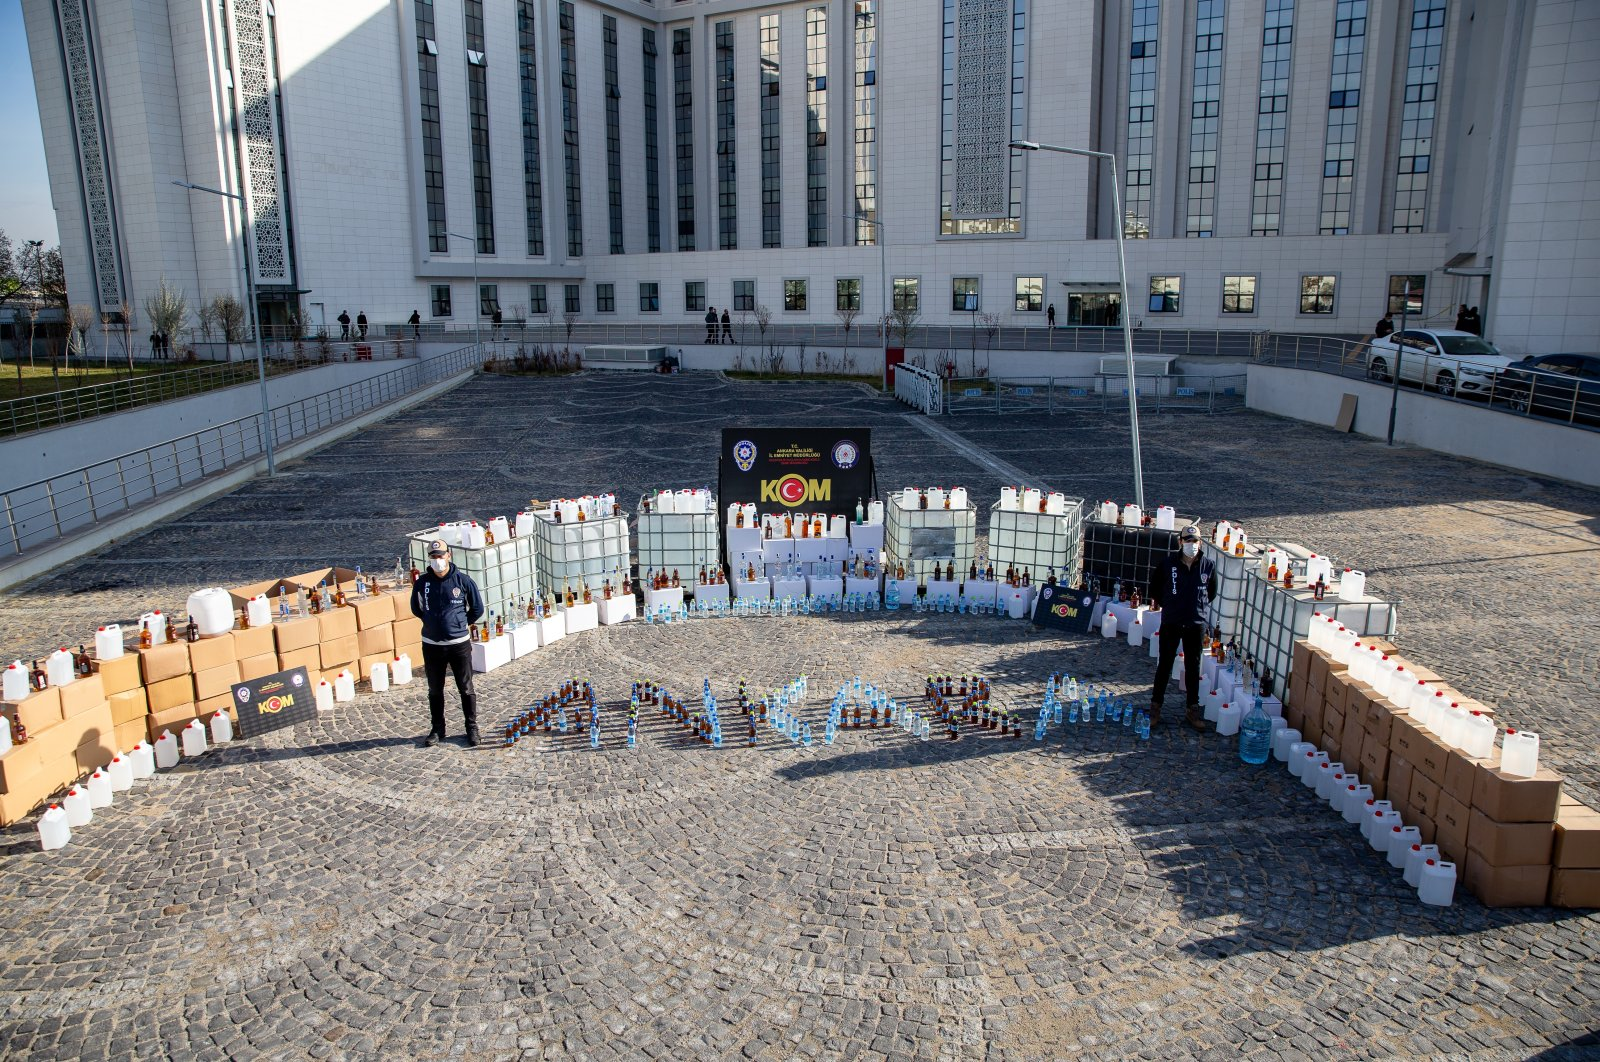 Bootleg drinks seized in operations on display outside police headquarters in the capital Ankara, Turkey, Dec. 25, 2020. (AA PHOTO)